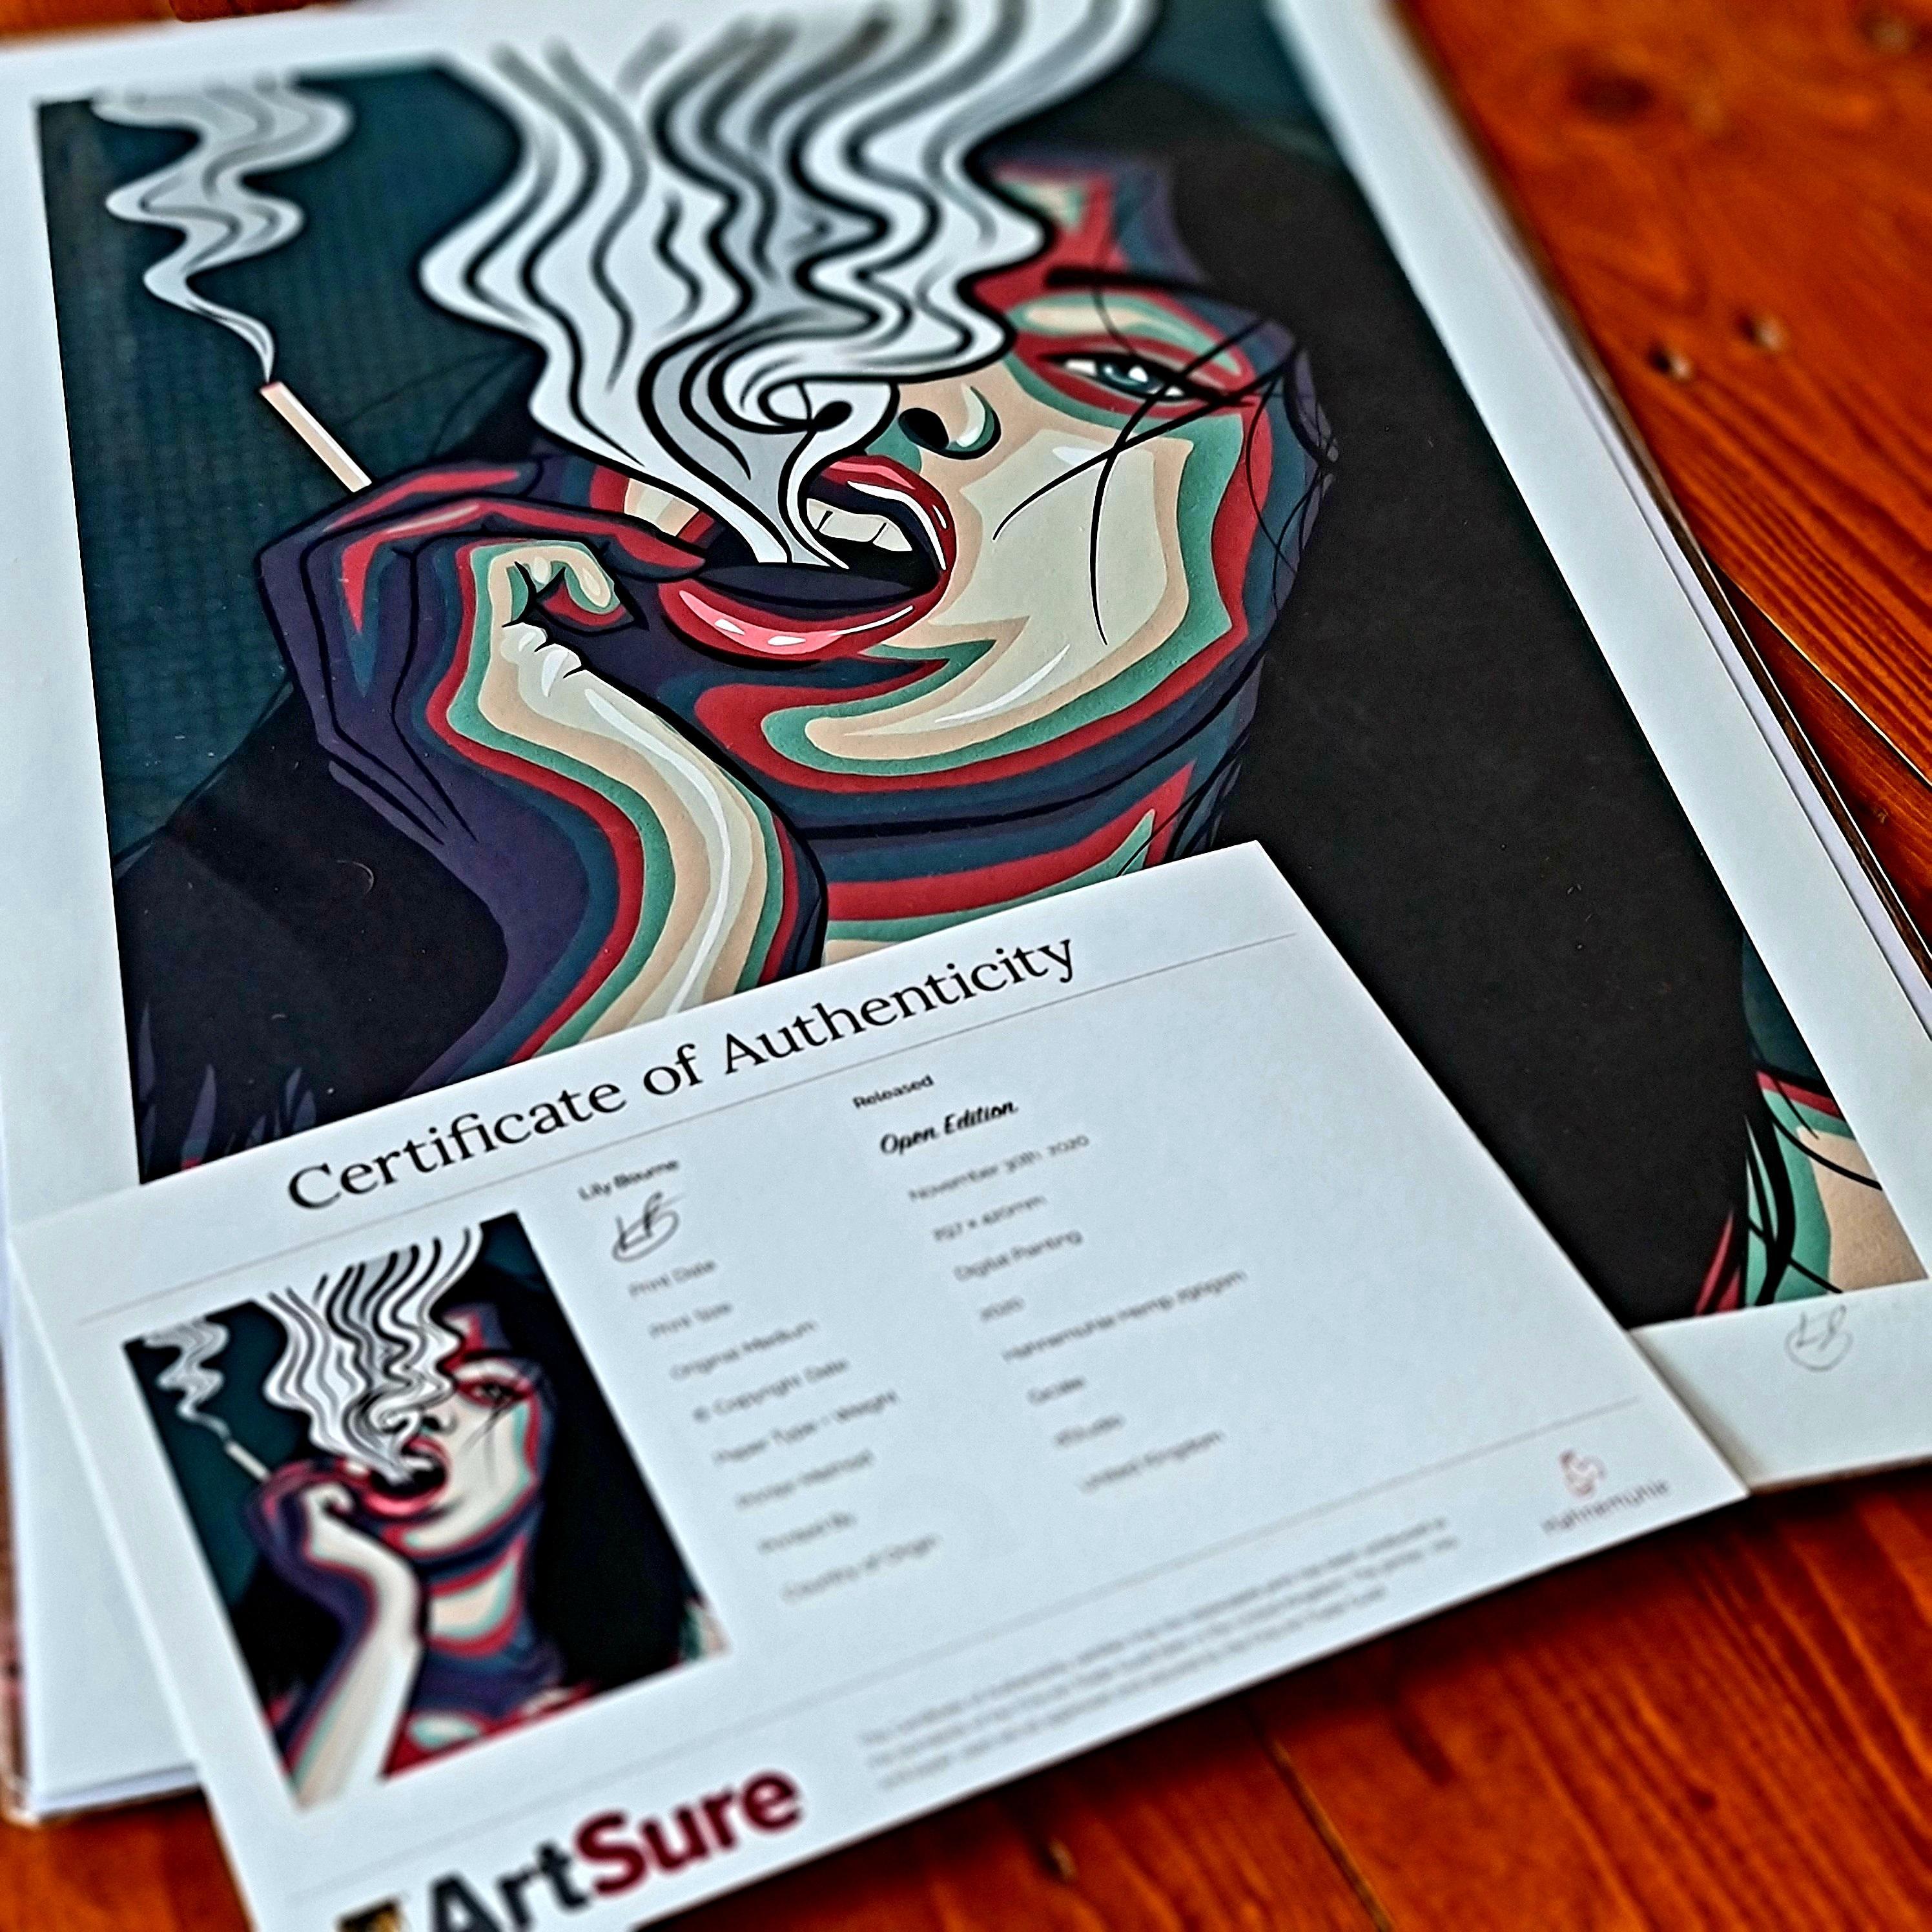 A digital pop art painting by Lily Bourne printed on eco fine art paper titled Release showing showing a female exhale smoke from a cigarette which is holding. Print shown with certificate.